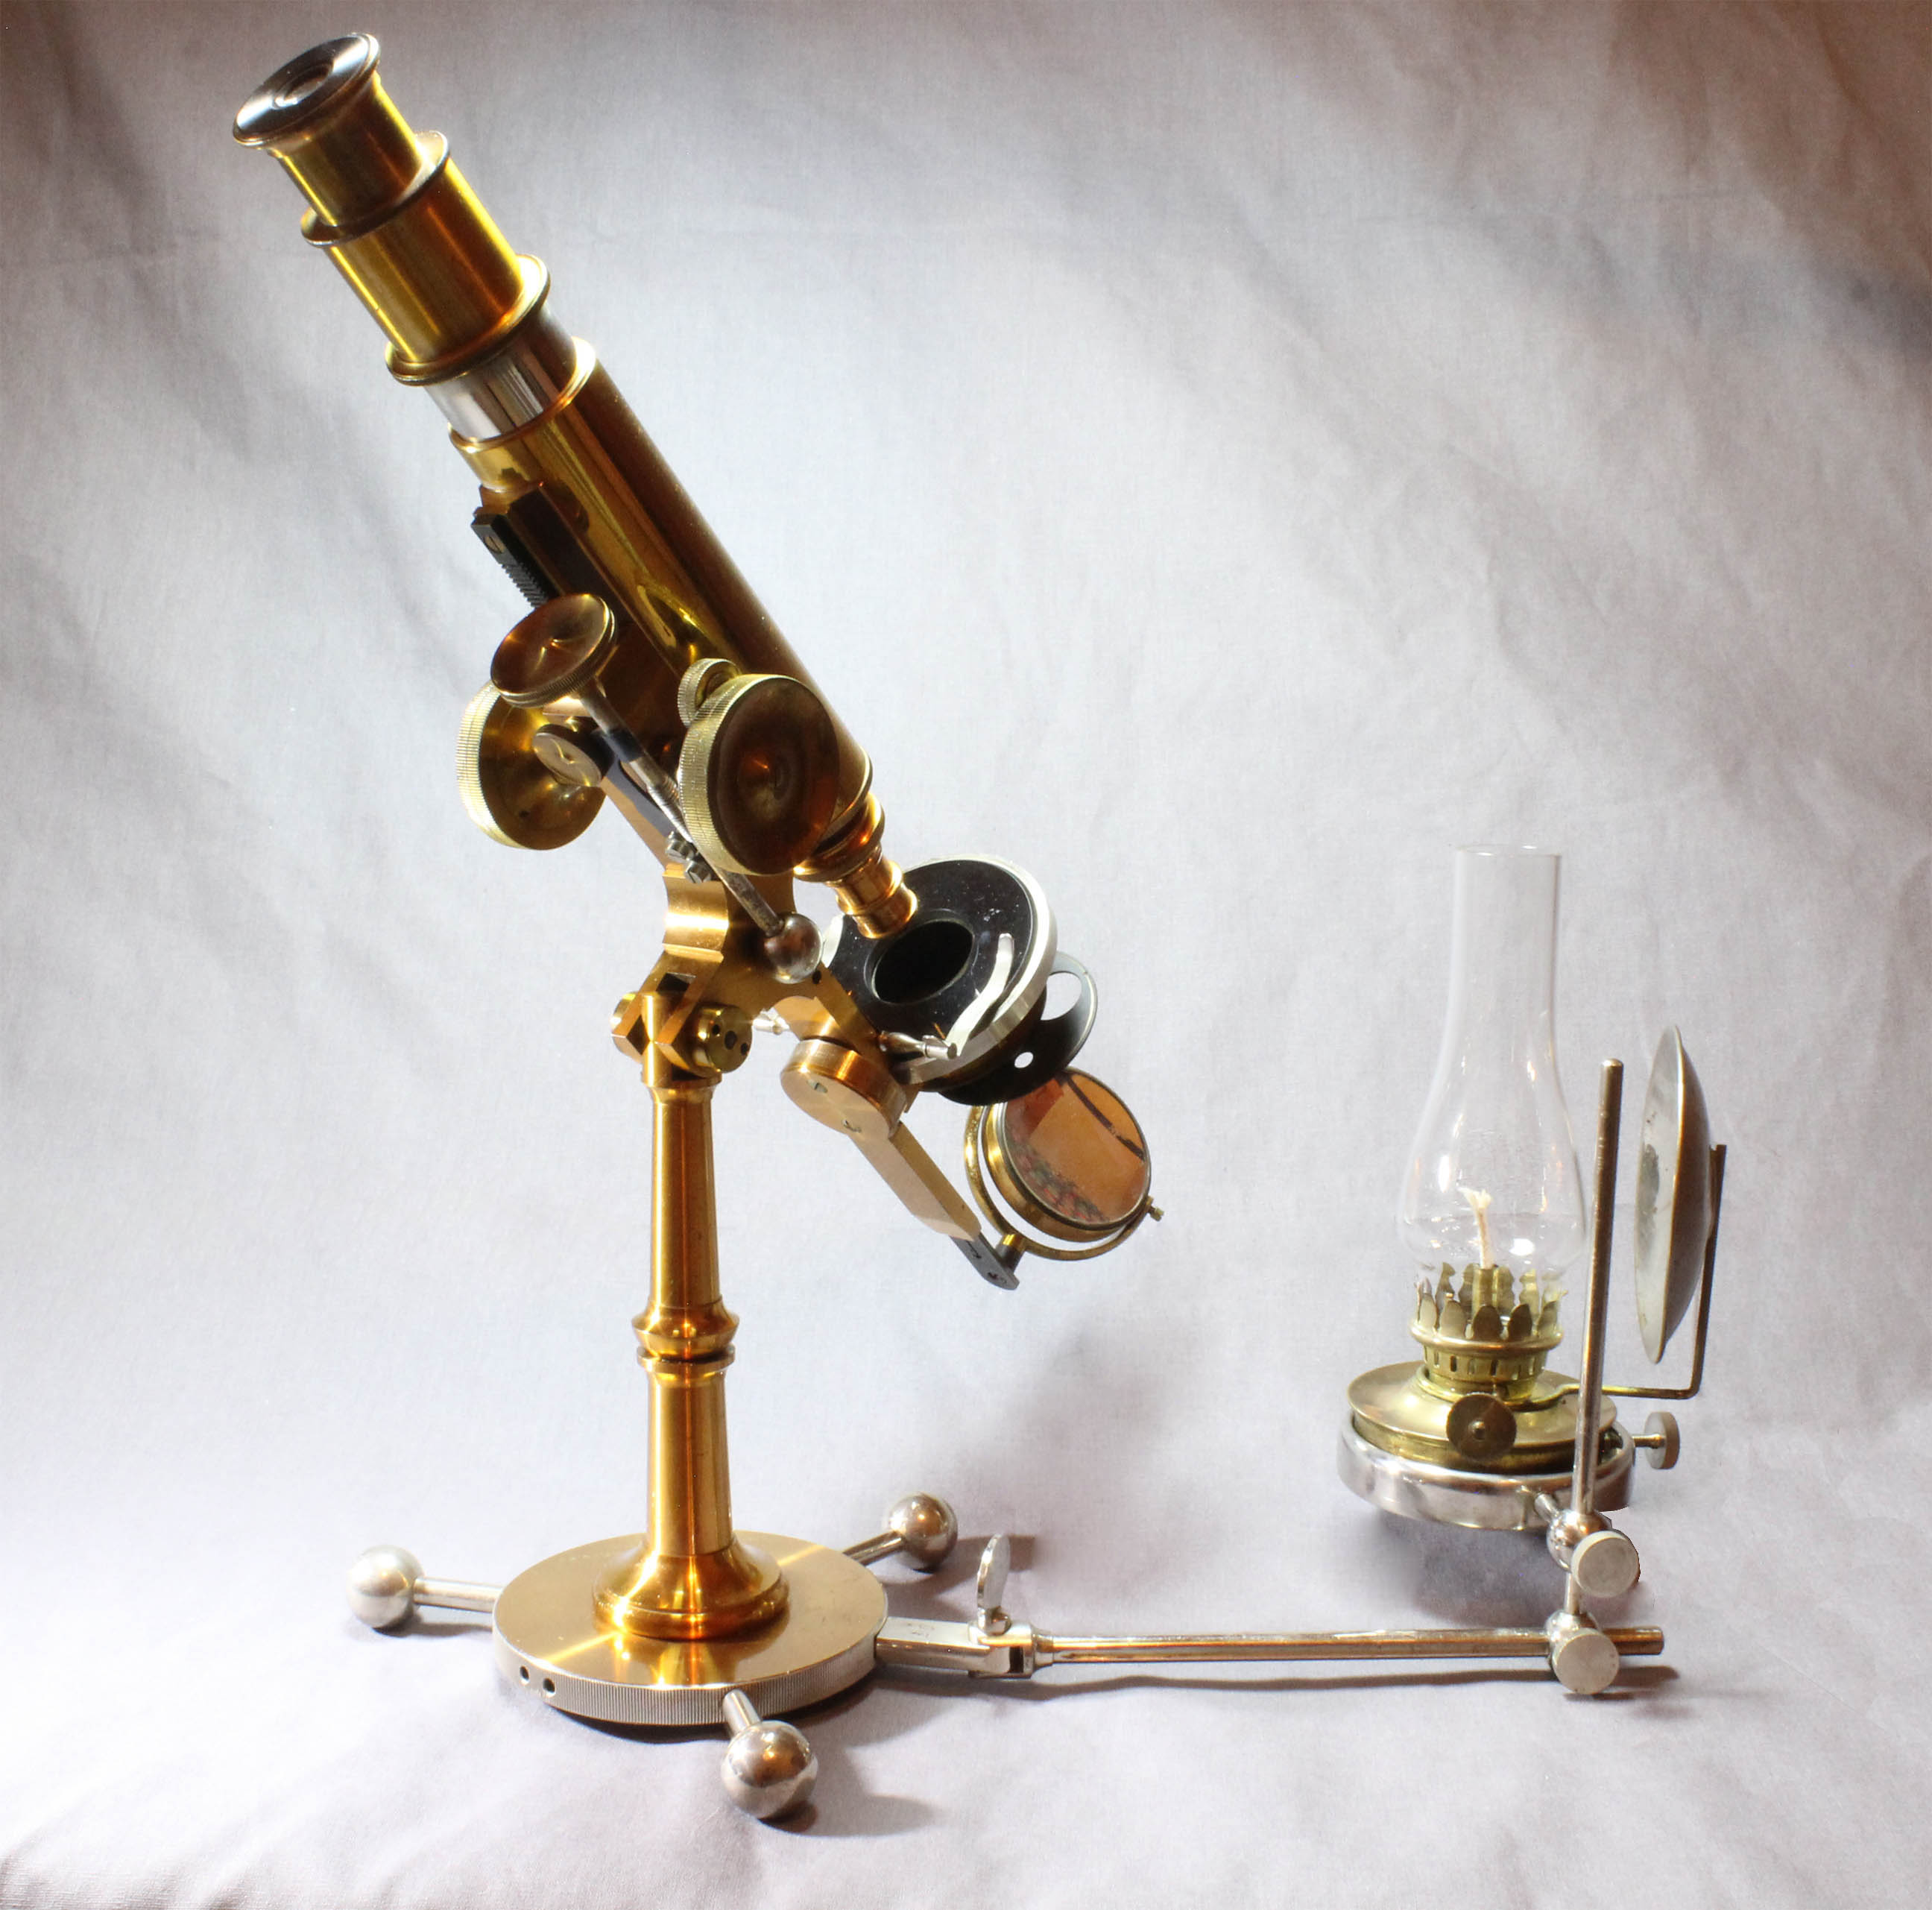 Improved Griffith Club microscope with lamp